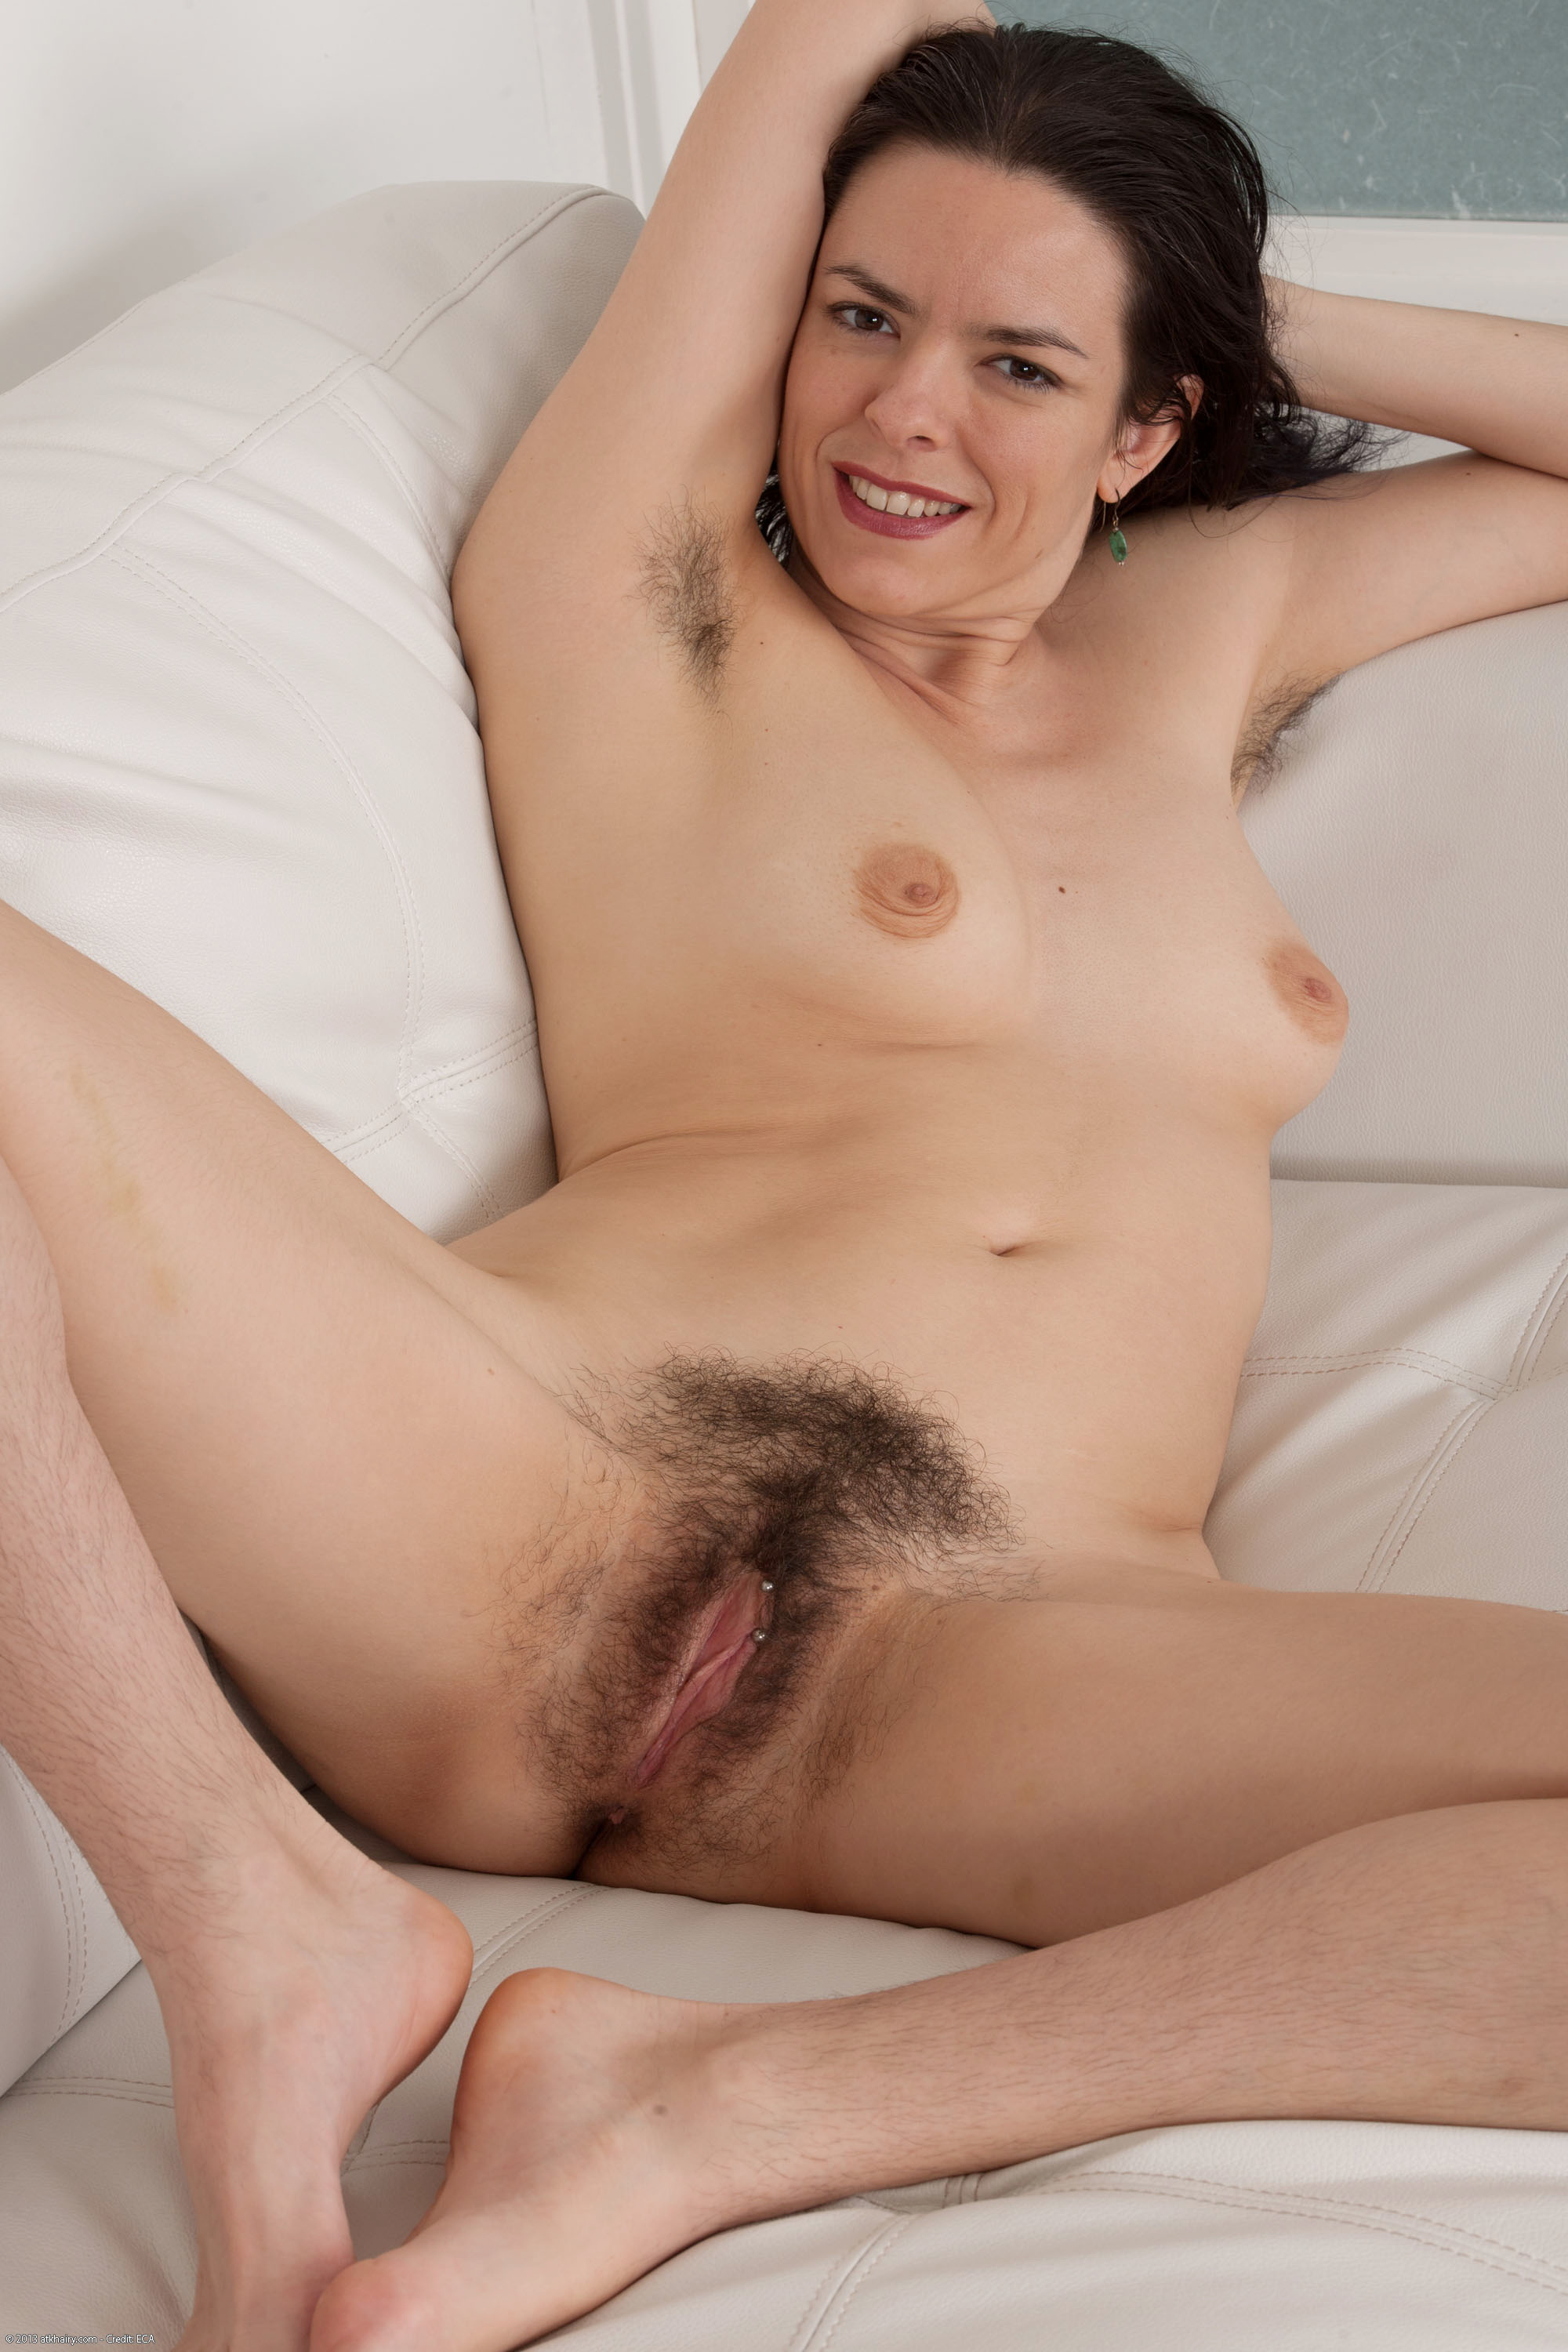 Porno girls small hairy vieotures photos